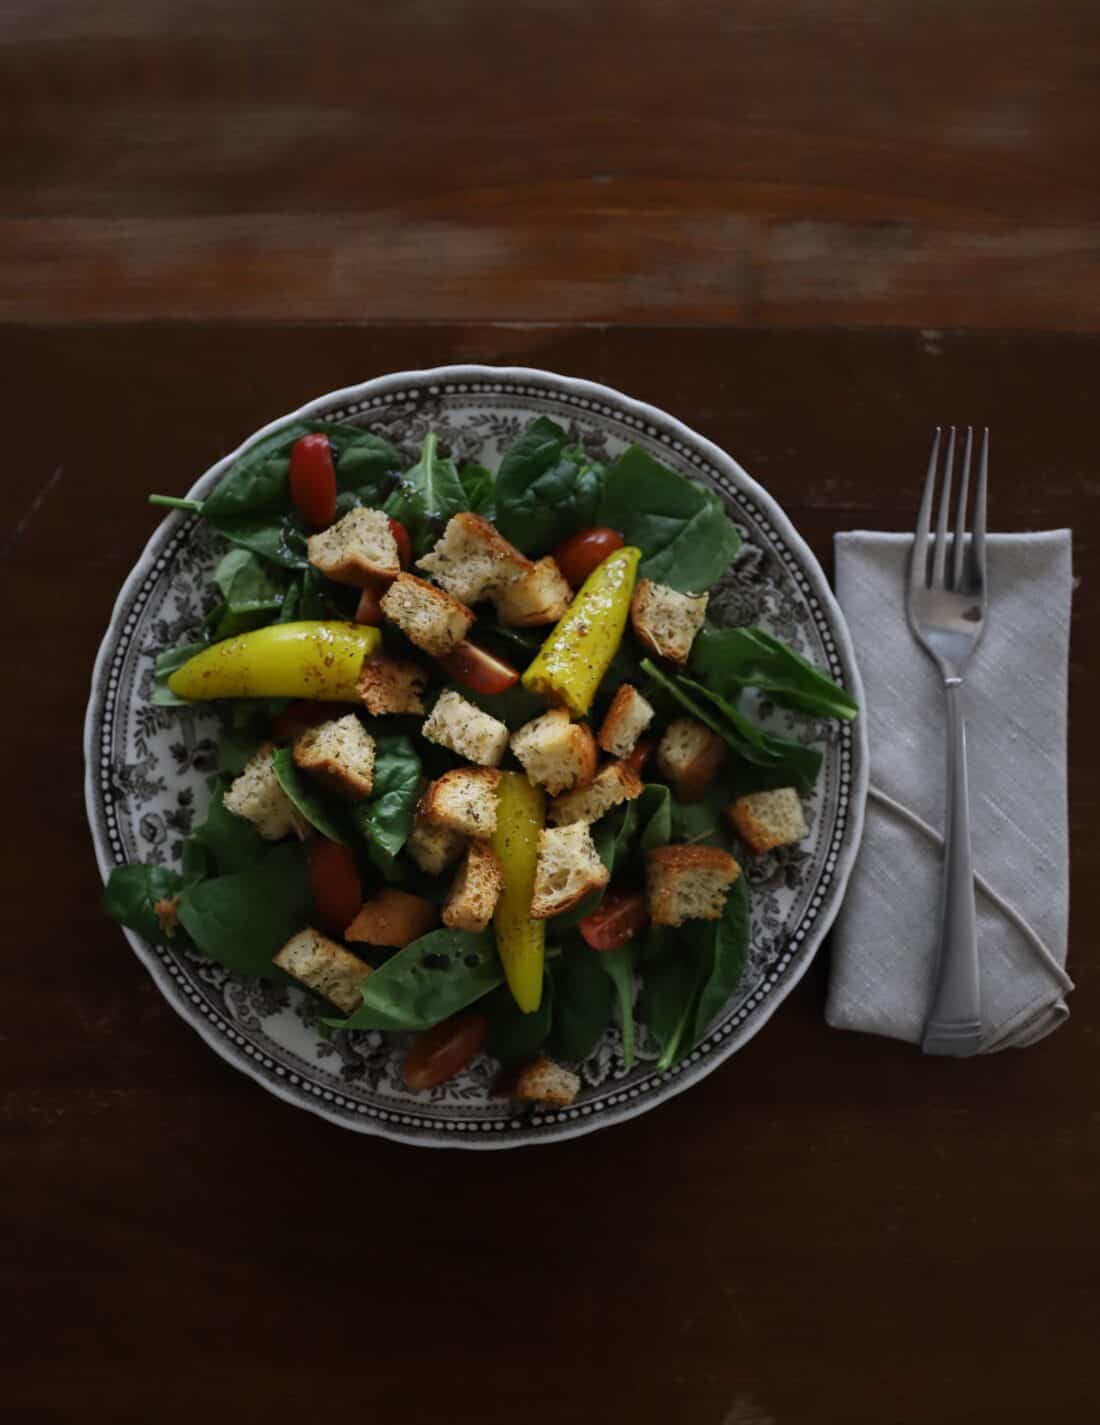 easy sourdough italian croutons from scratch on a green salad